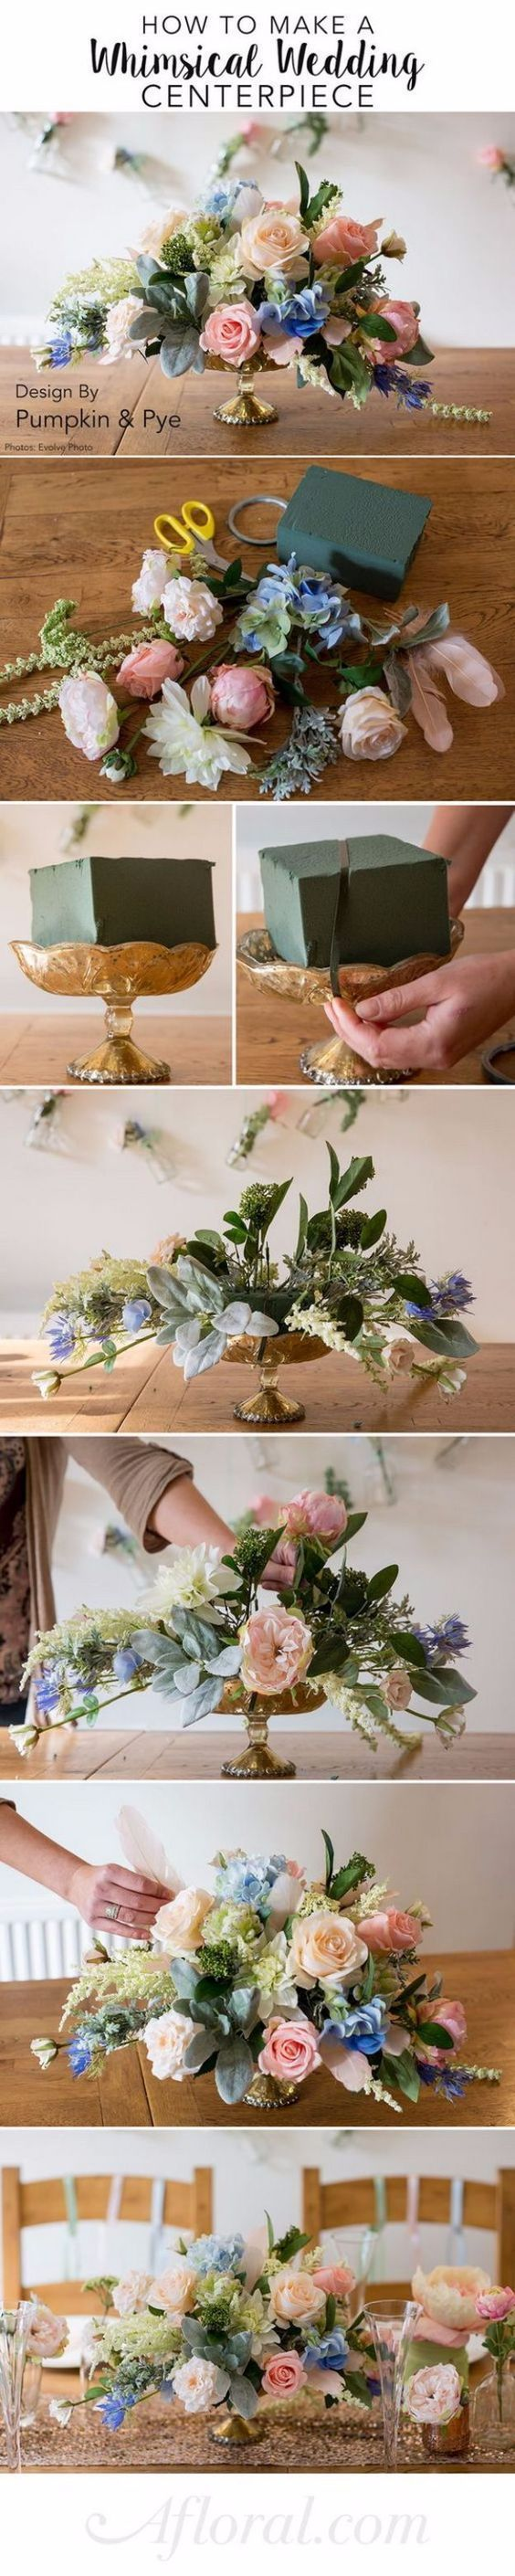 DIY Wedding Centerpieces - DIY Whimsical Wedding Centerpiece - Do It Yourself Ideas for Brides and Best Centerpiece Ideas for Weddings - Step by Step Tutorials for Making Mason Jars, Rustic Crafts, Flowers, Modern Decor, Vintage and Cheap Ideas for Couples on A Budget Outdoor and Indoor Weddings http://diyjoy.com/diy-wedding-centerpieces